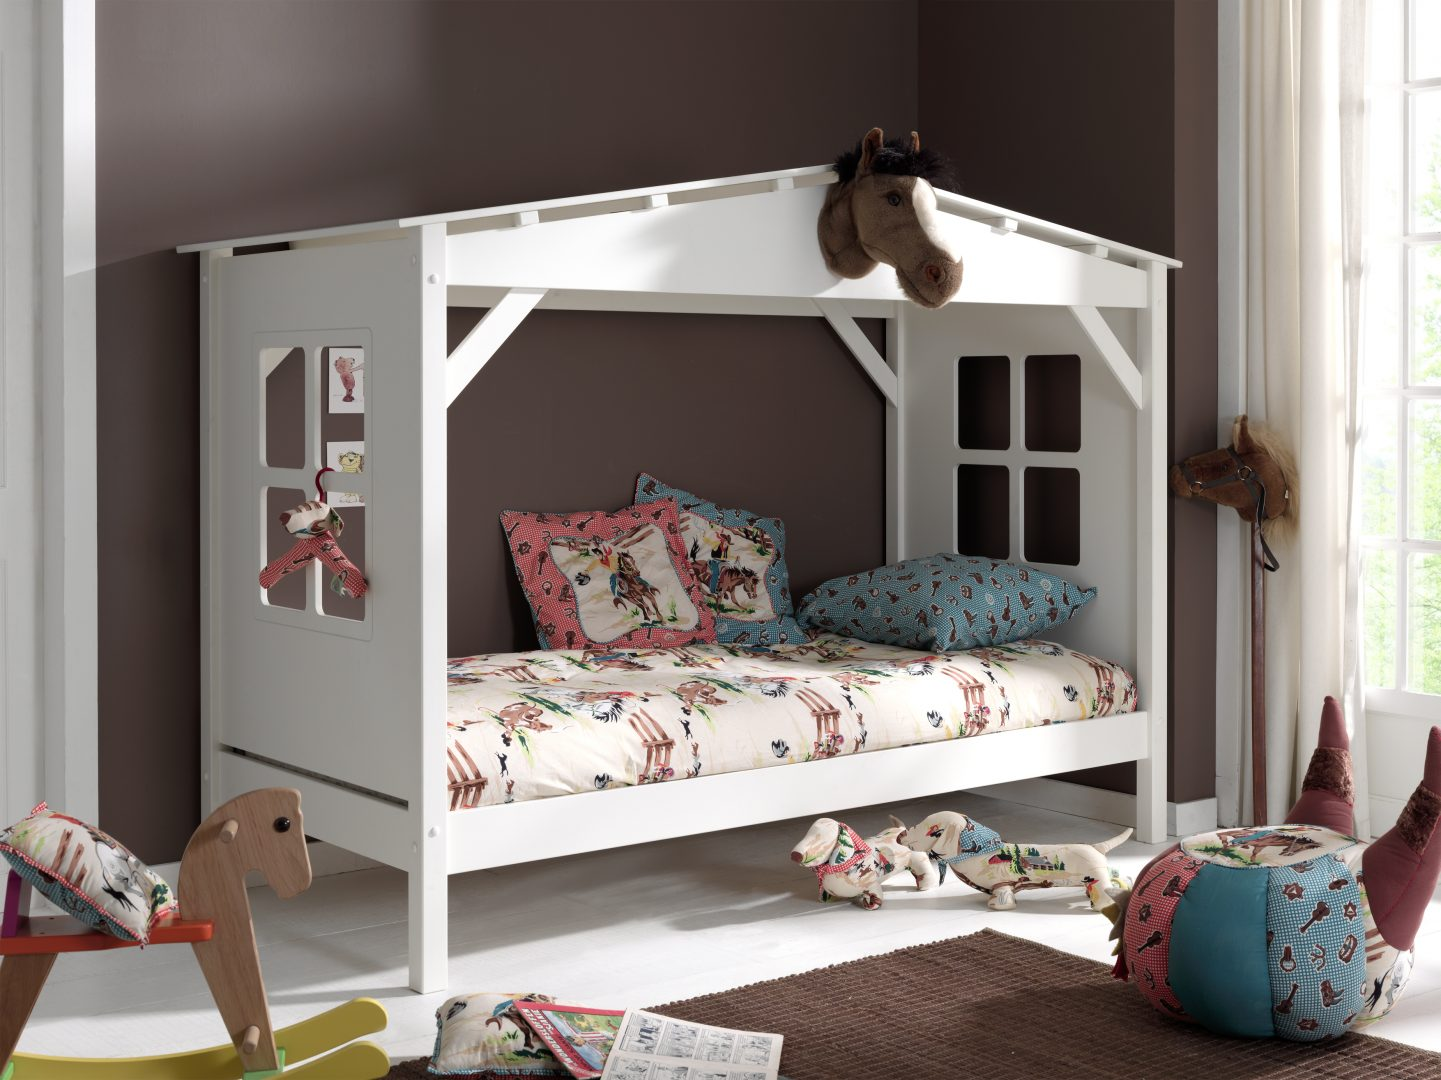 PICB9014 BOY 01 - GET INSPIRED De kinderkamer